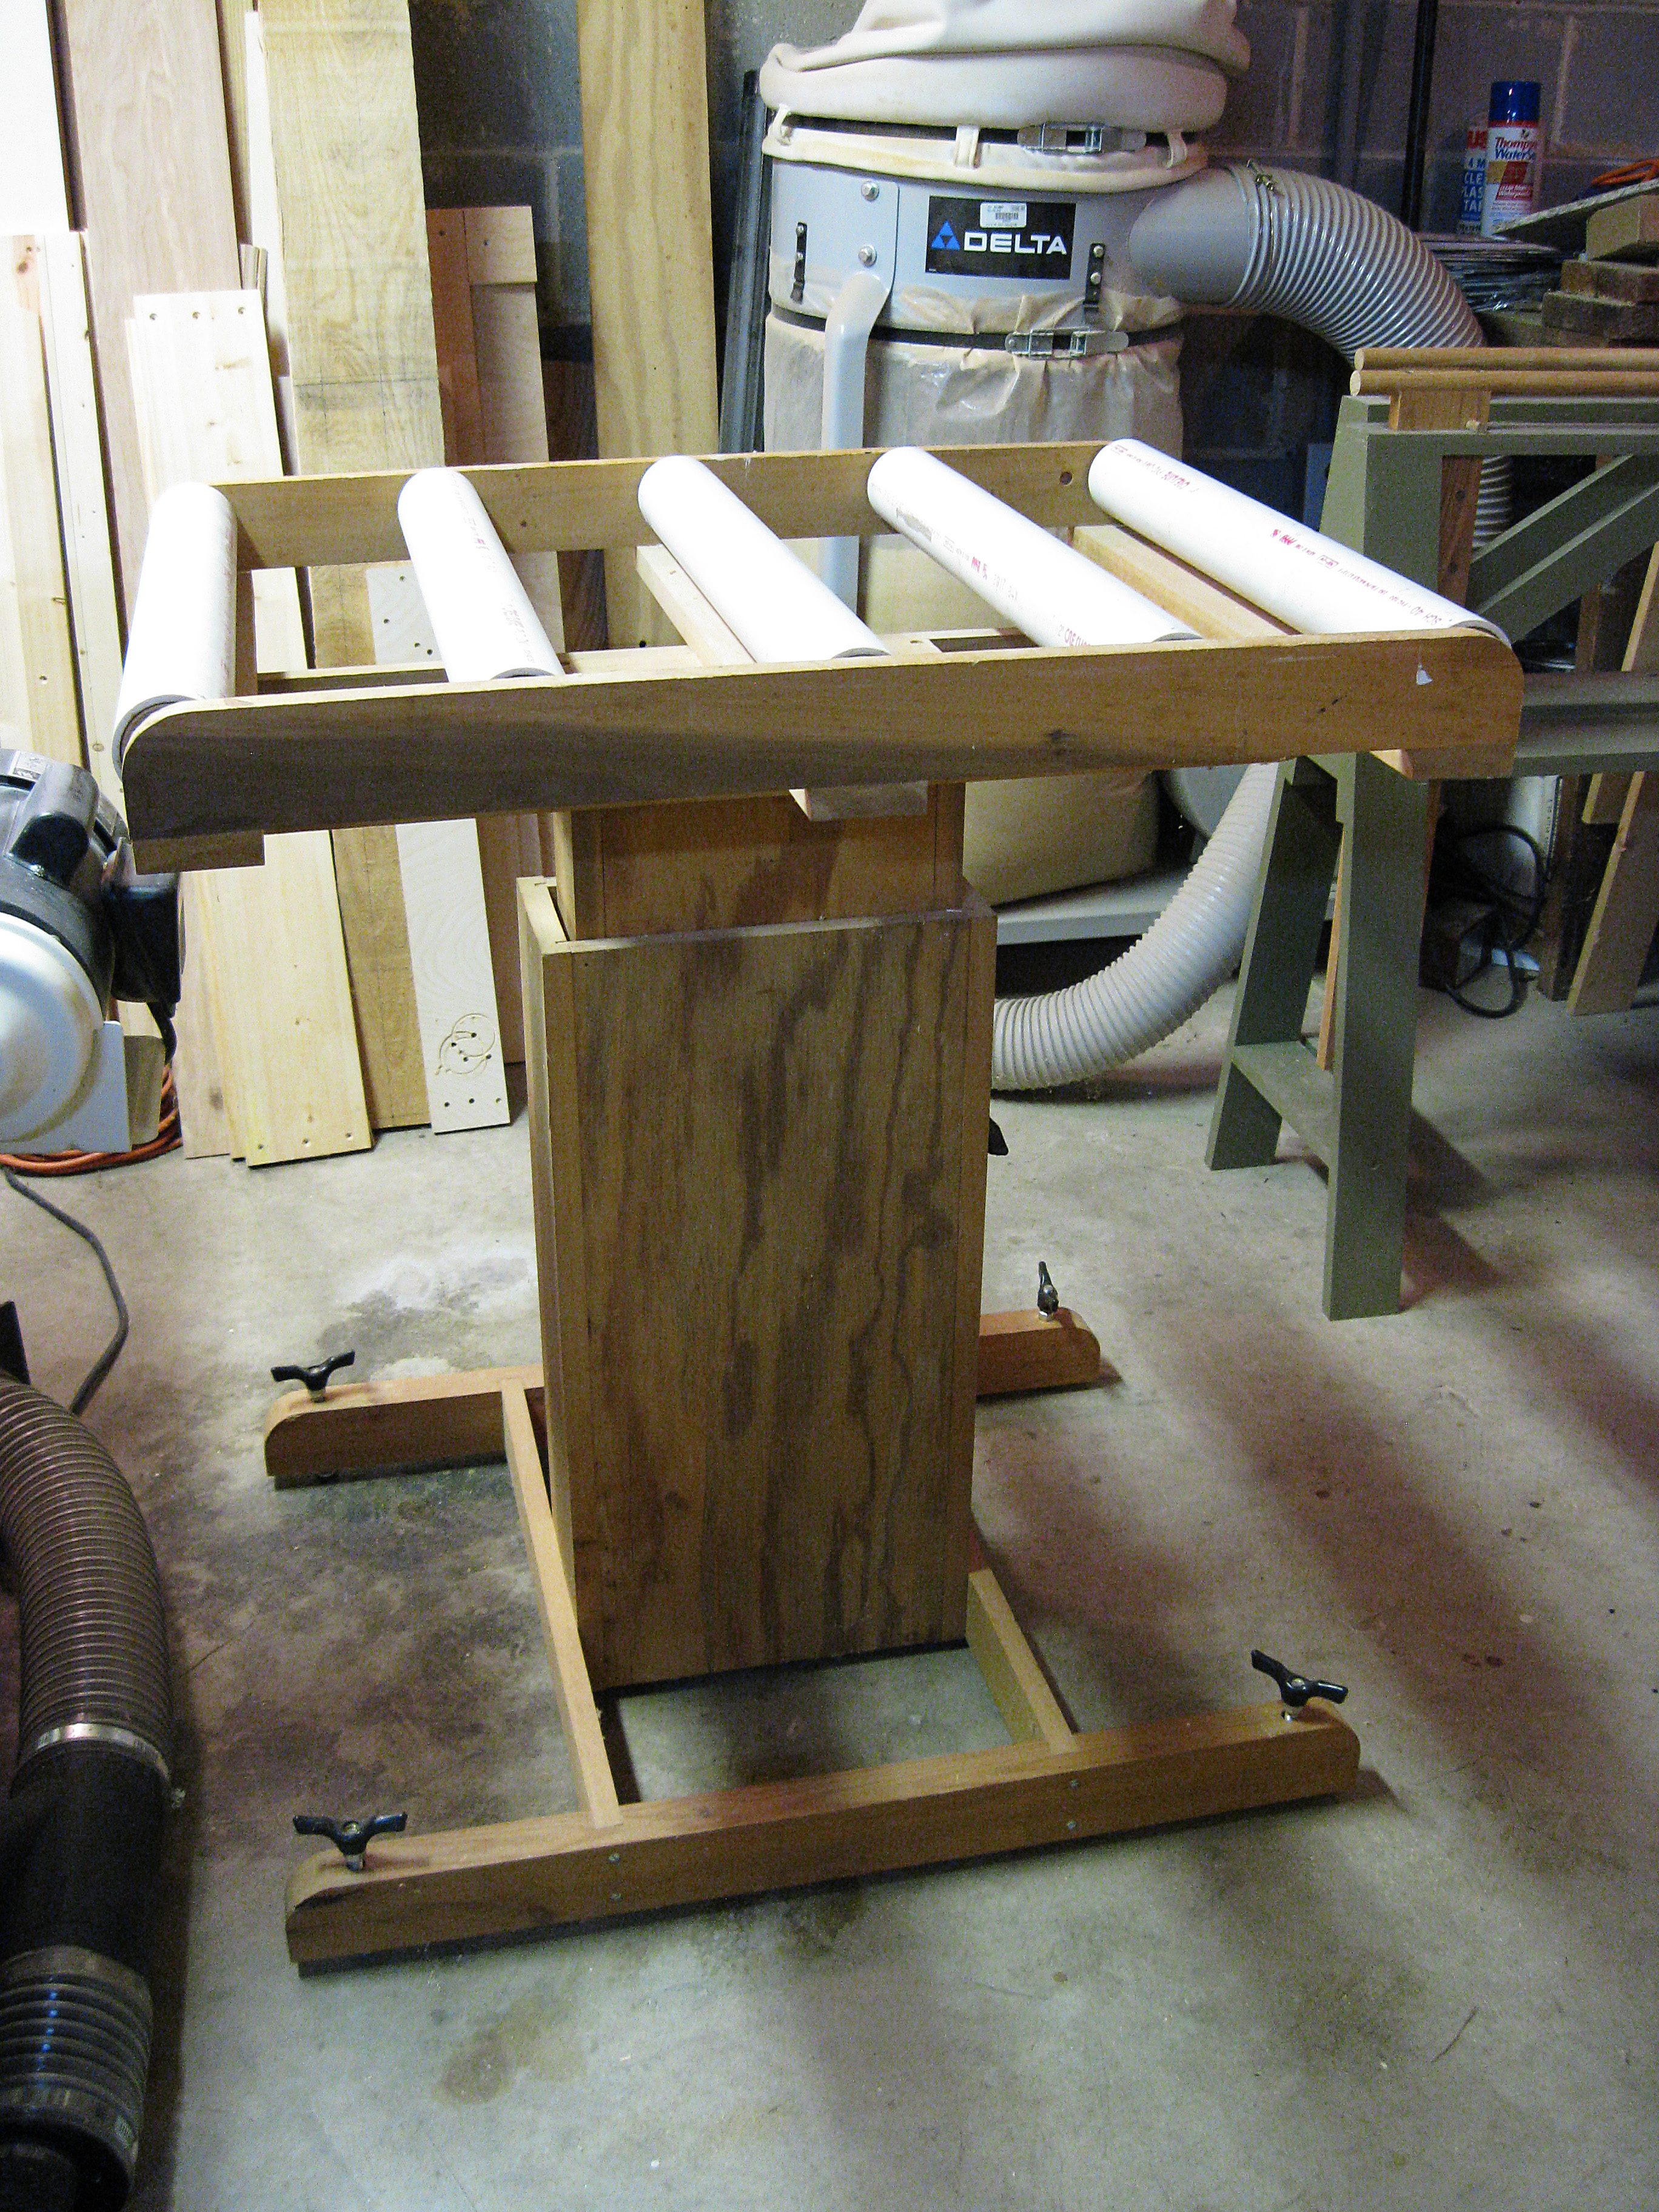 ... DIY Roller Work Stand Download rustic wooden bench plans | woodideas